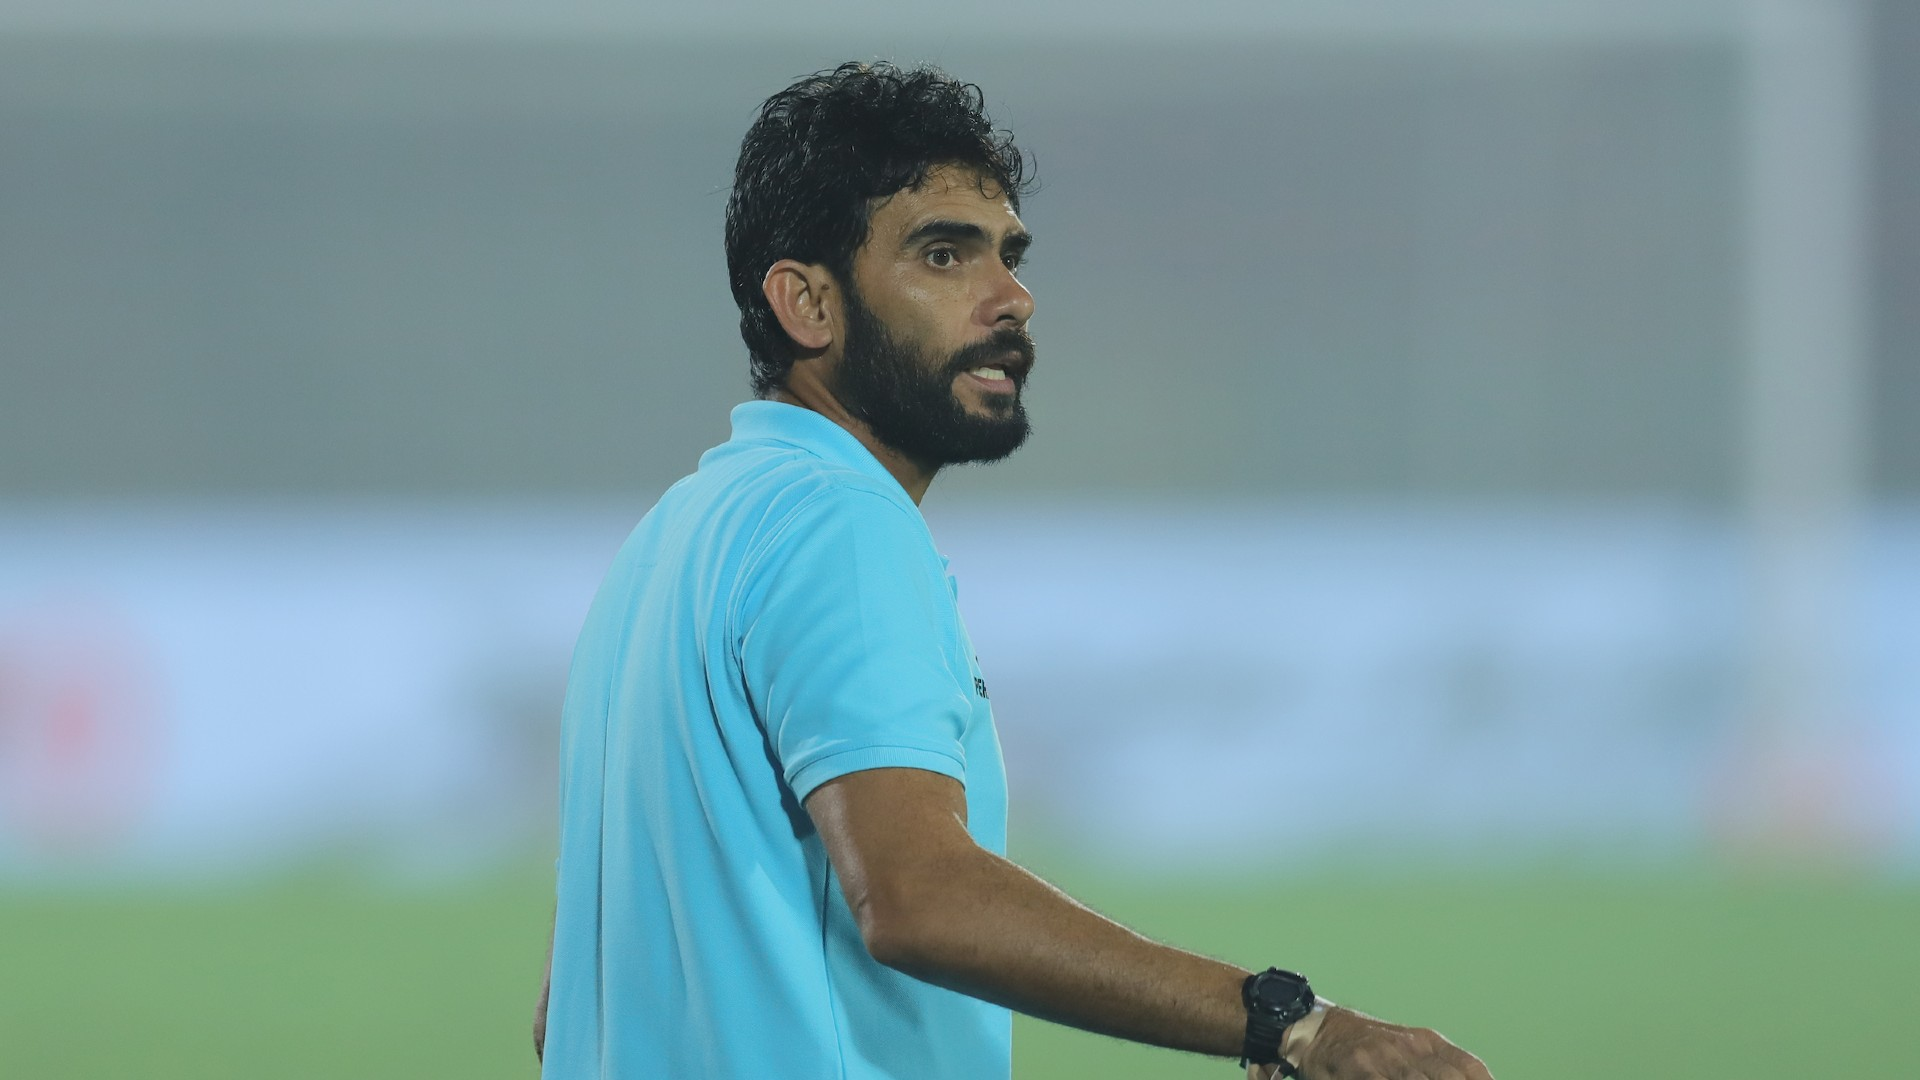 Indian football: Indian managers to have obtained a Pro license